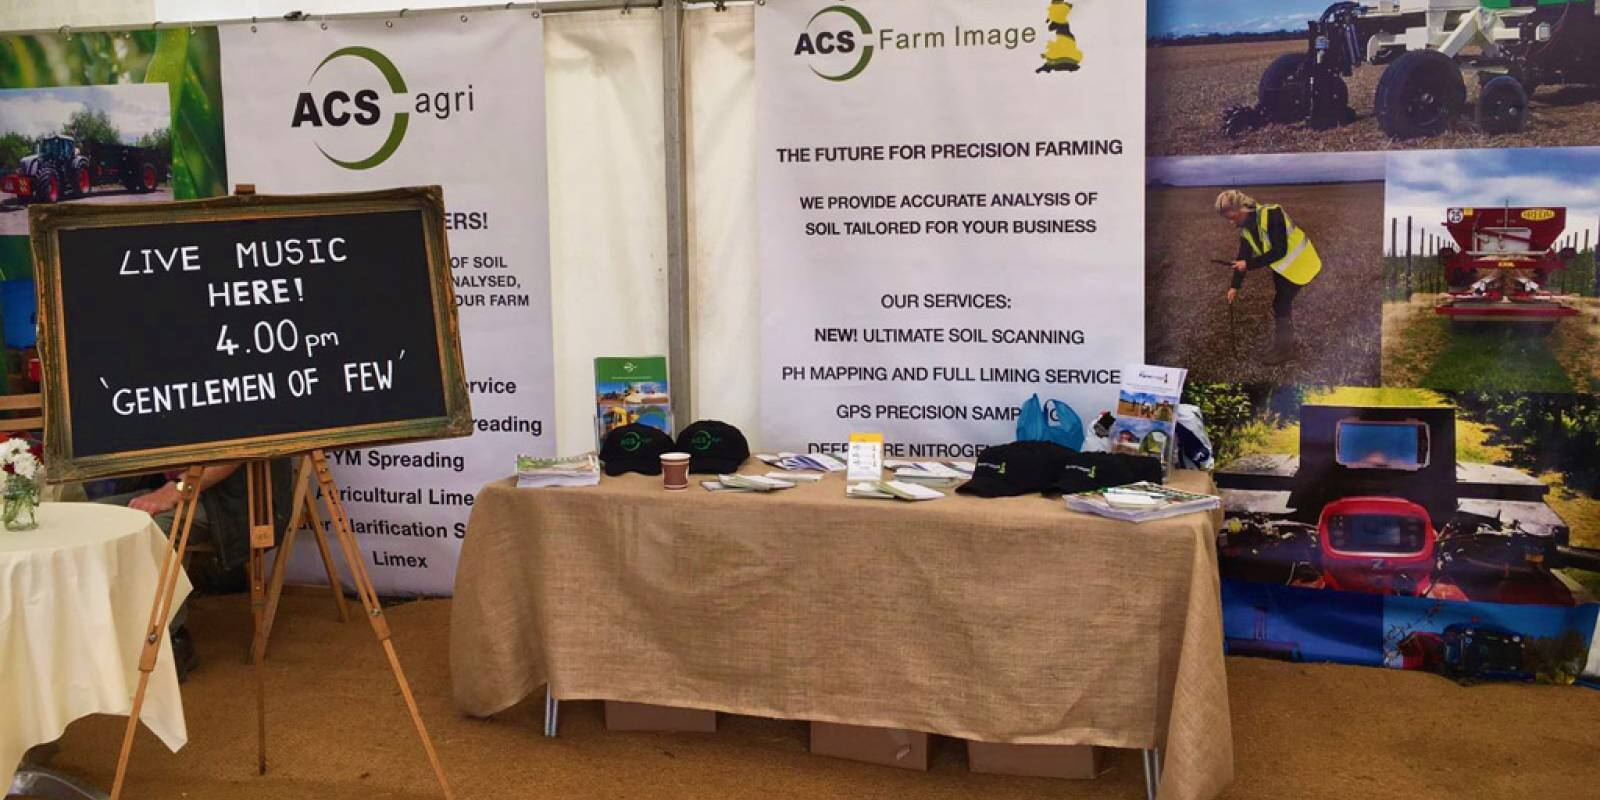 East-Kent-Ploughing-Match-2017-table-and-banners.jpg